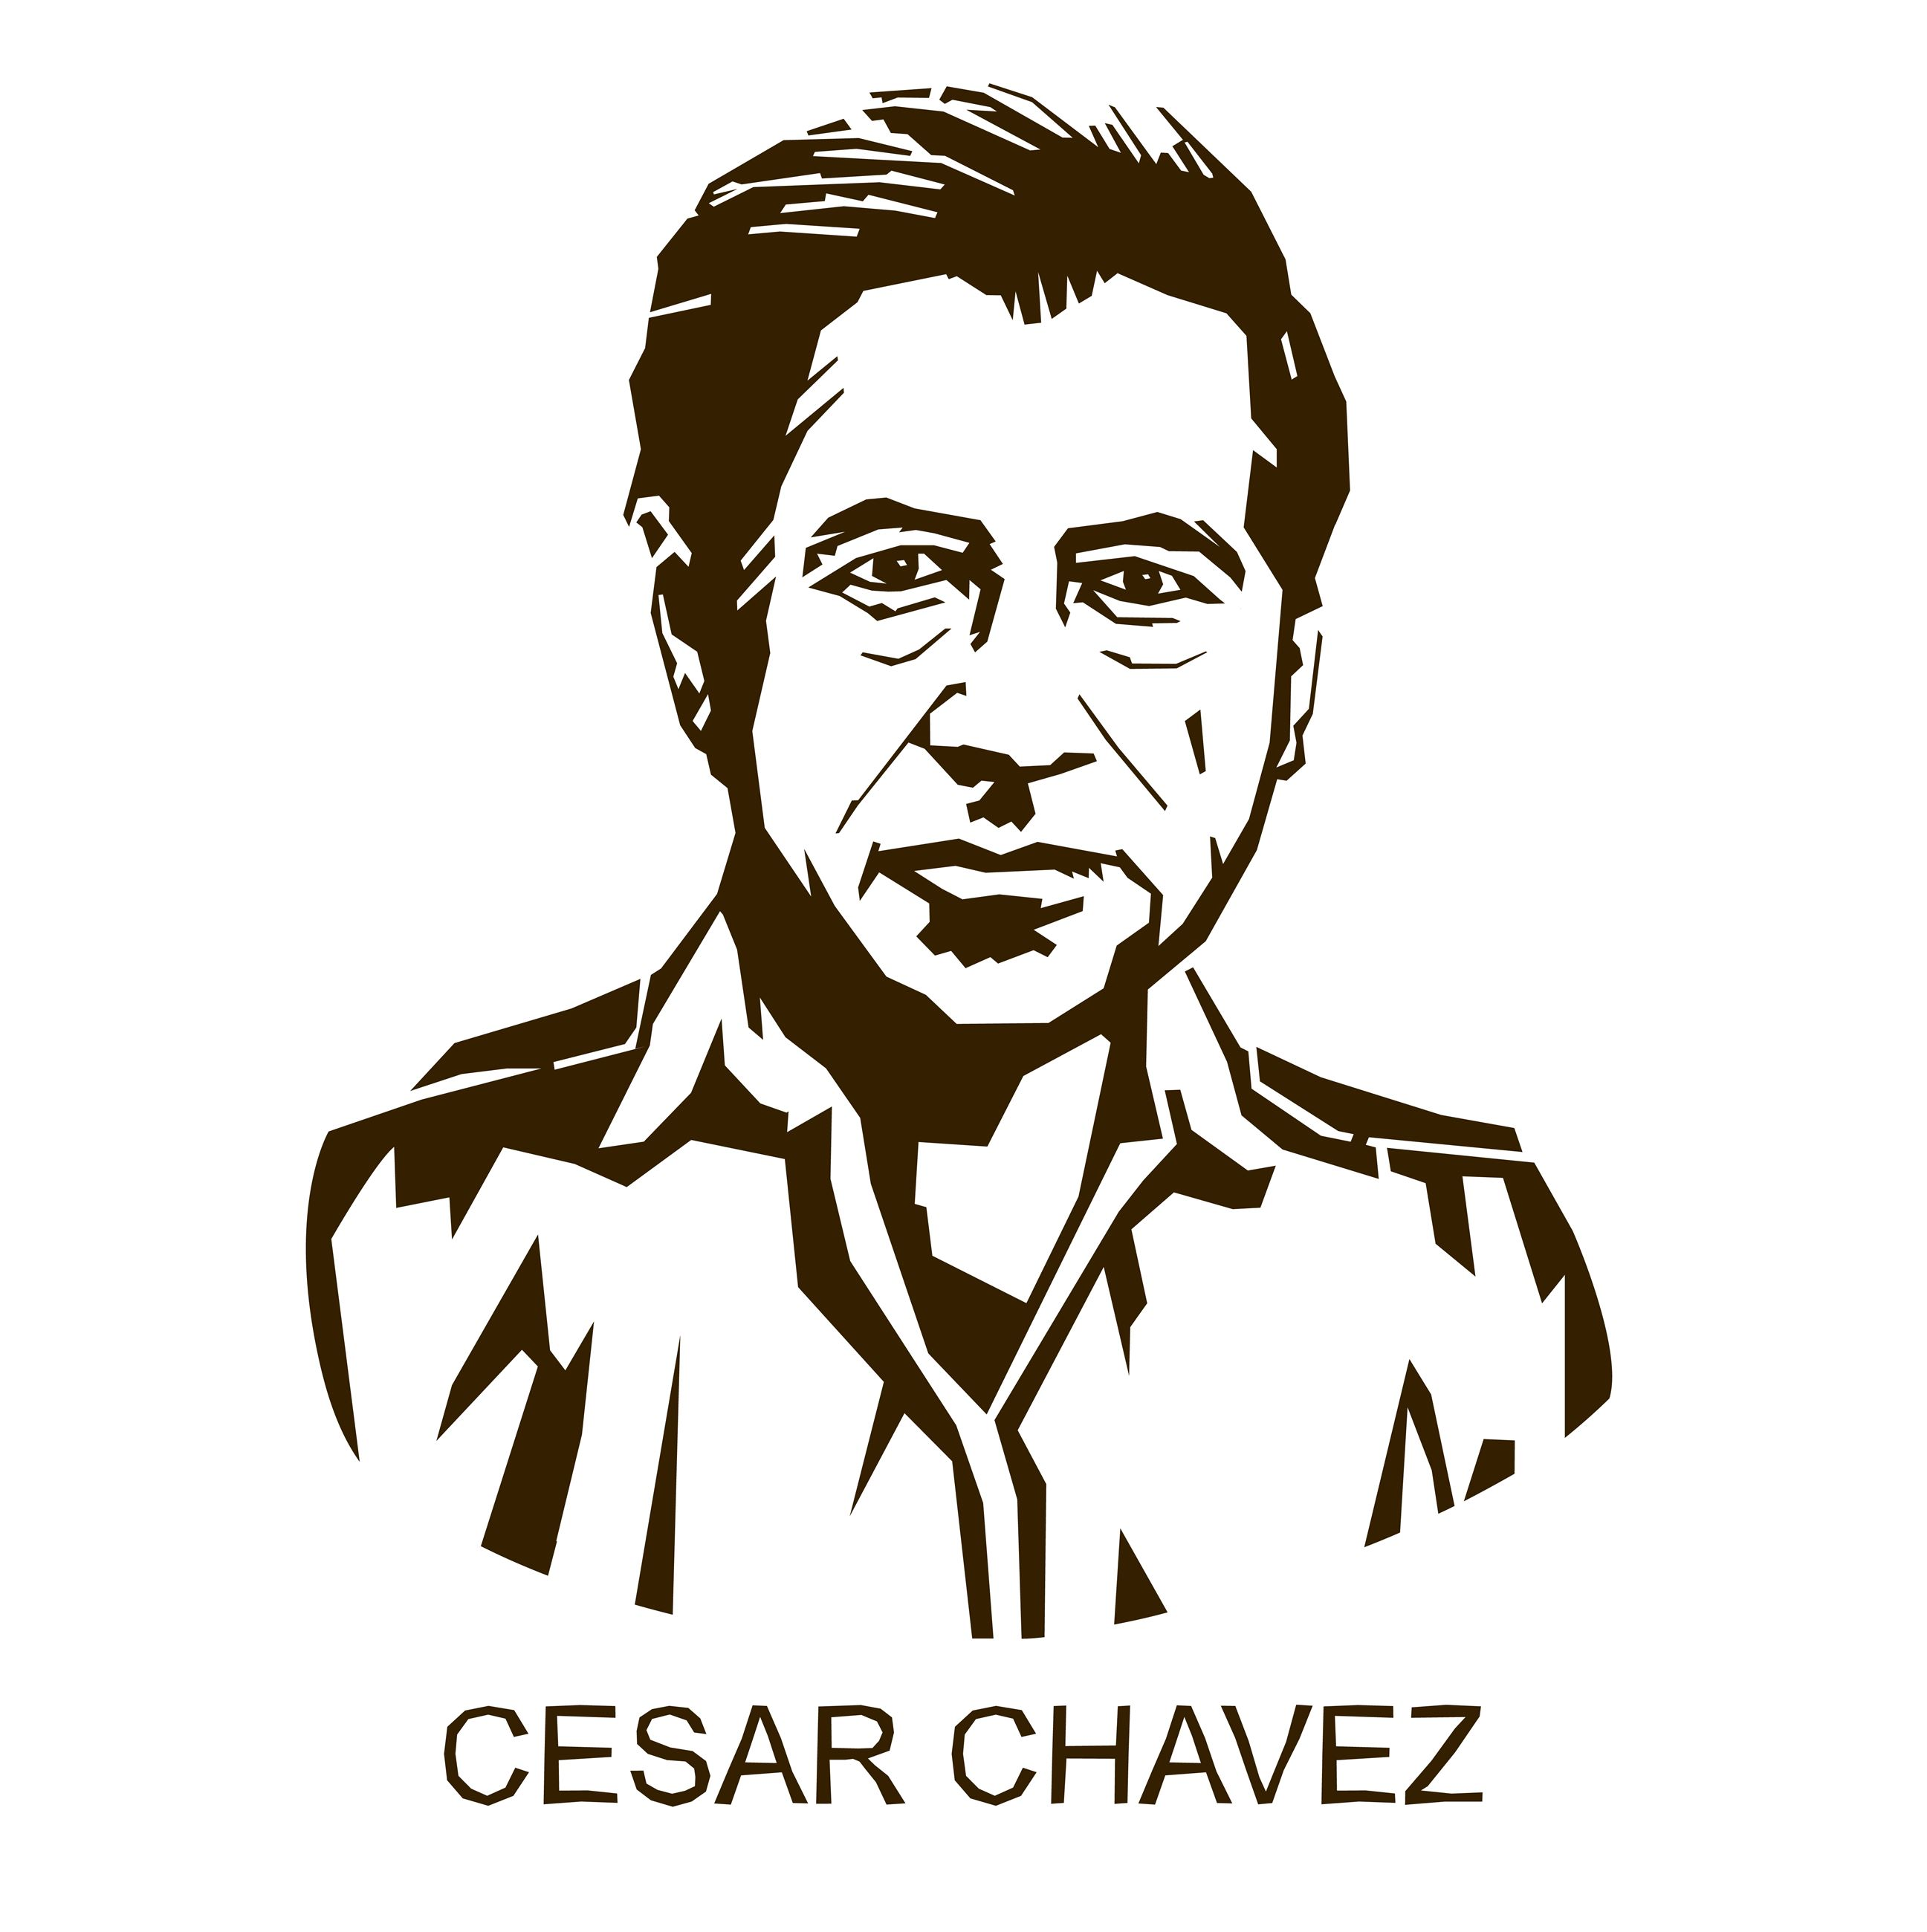 Drawing of César Chávez